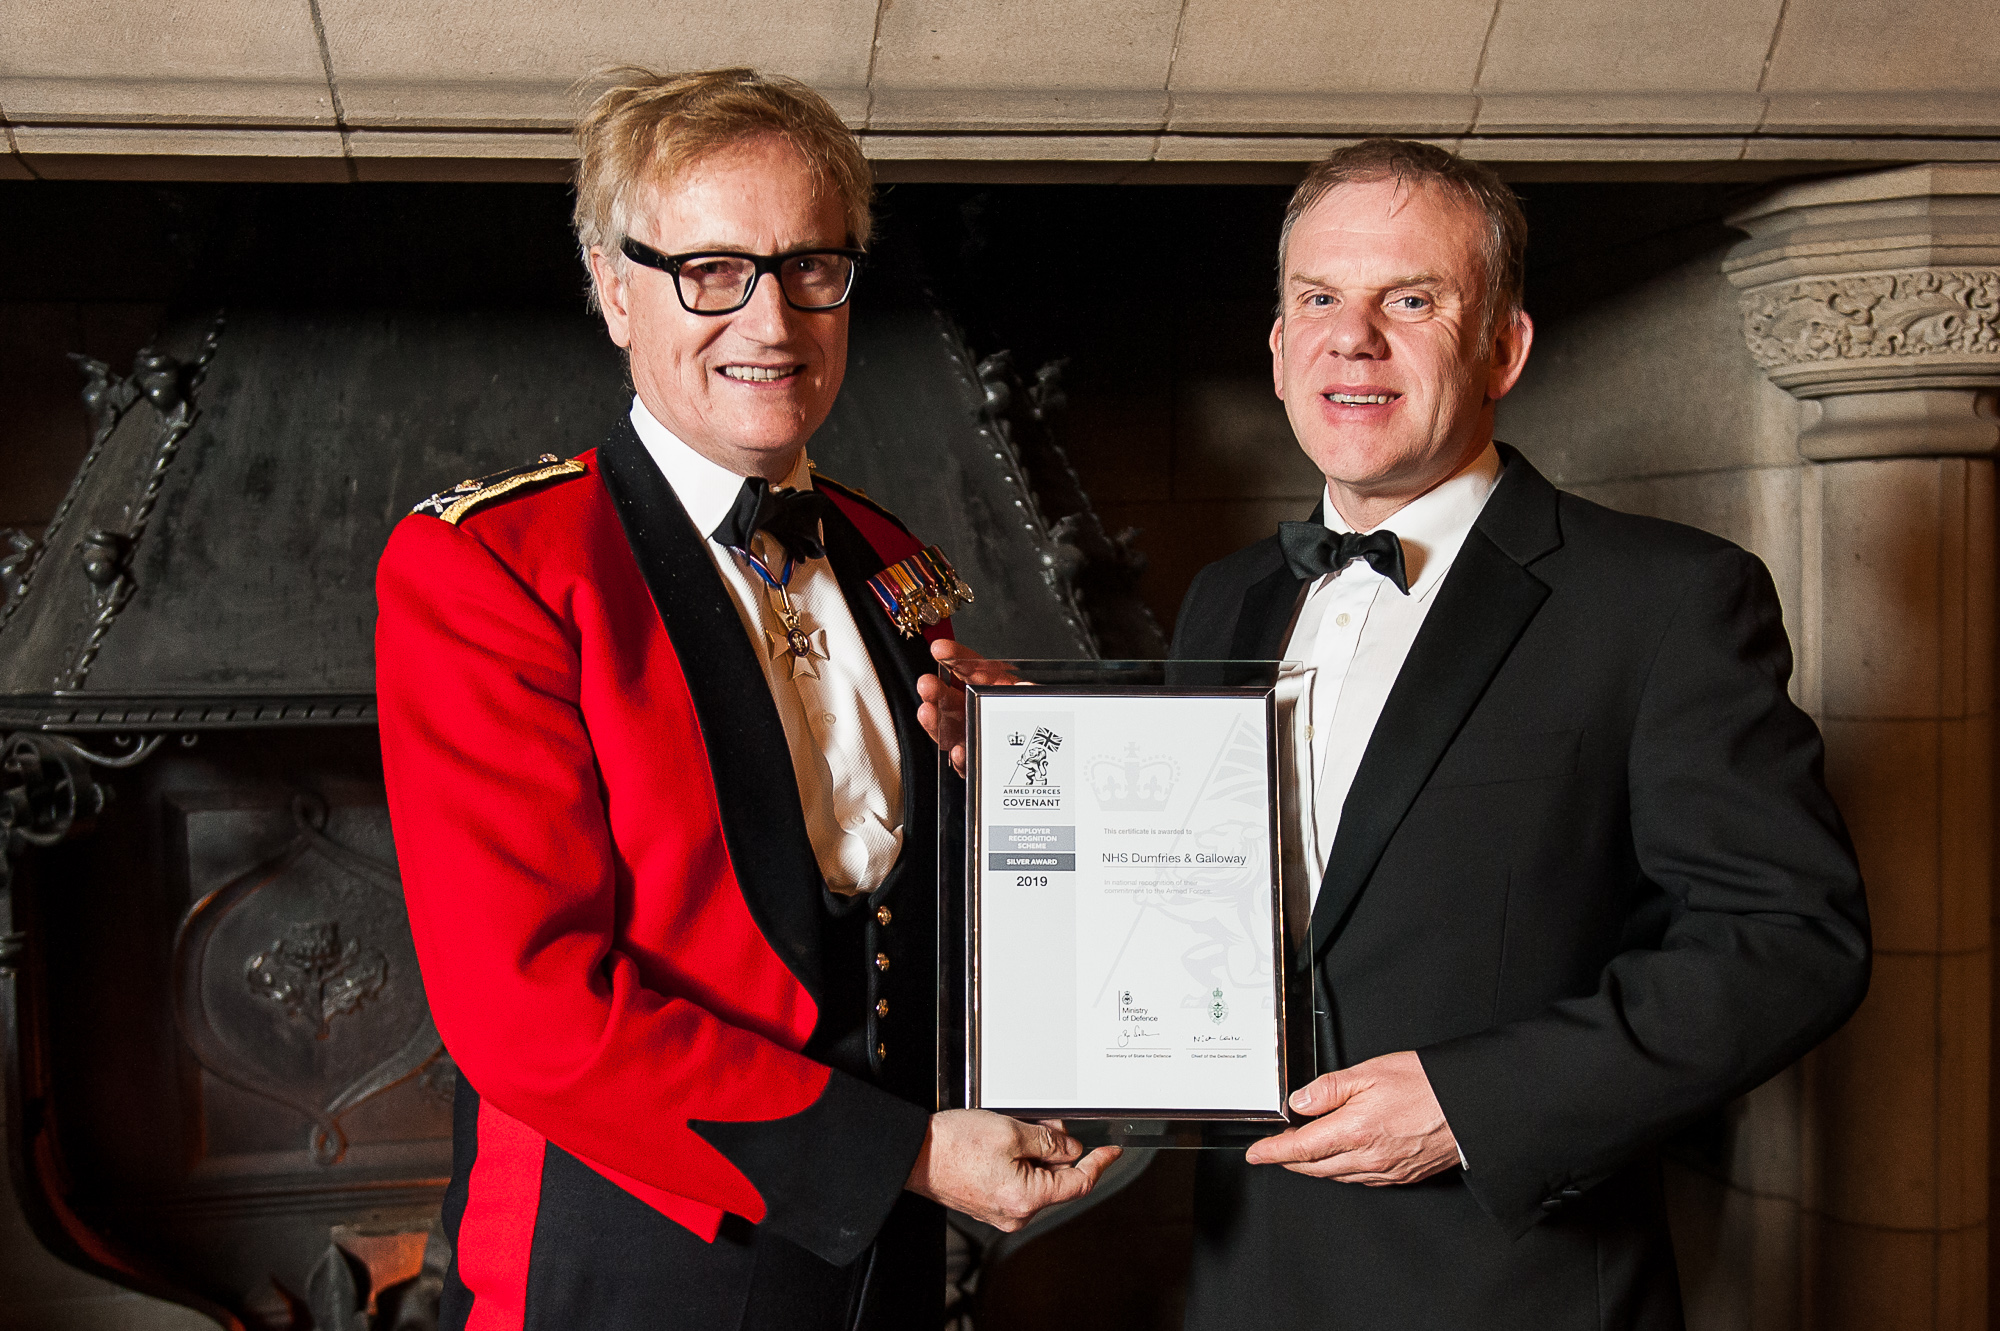 Two men holding a certificate